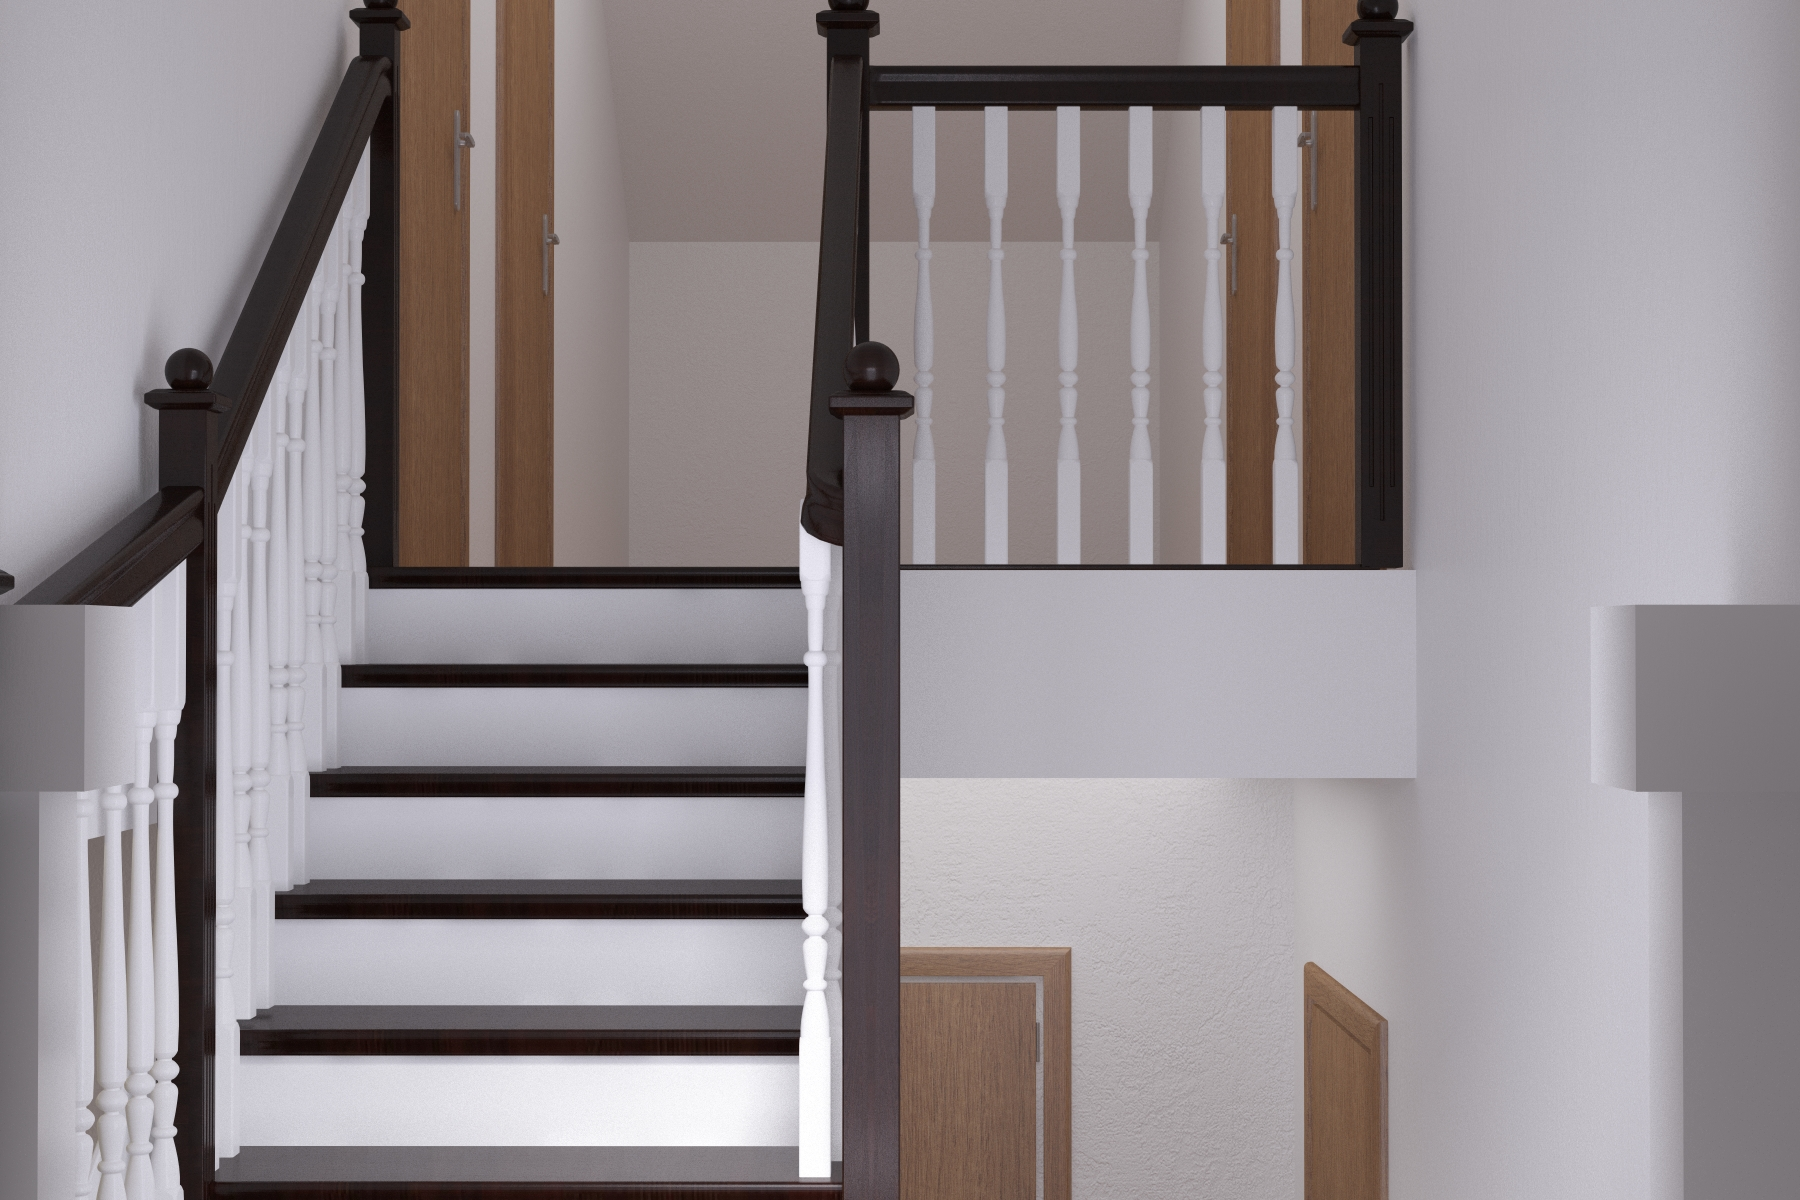 Visualization of stairs